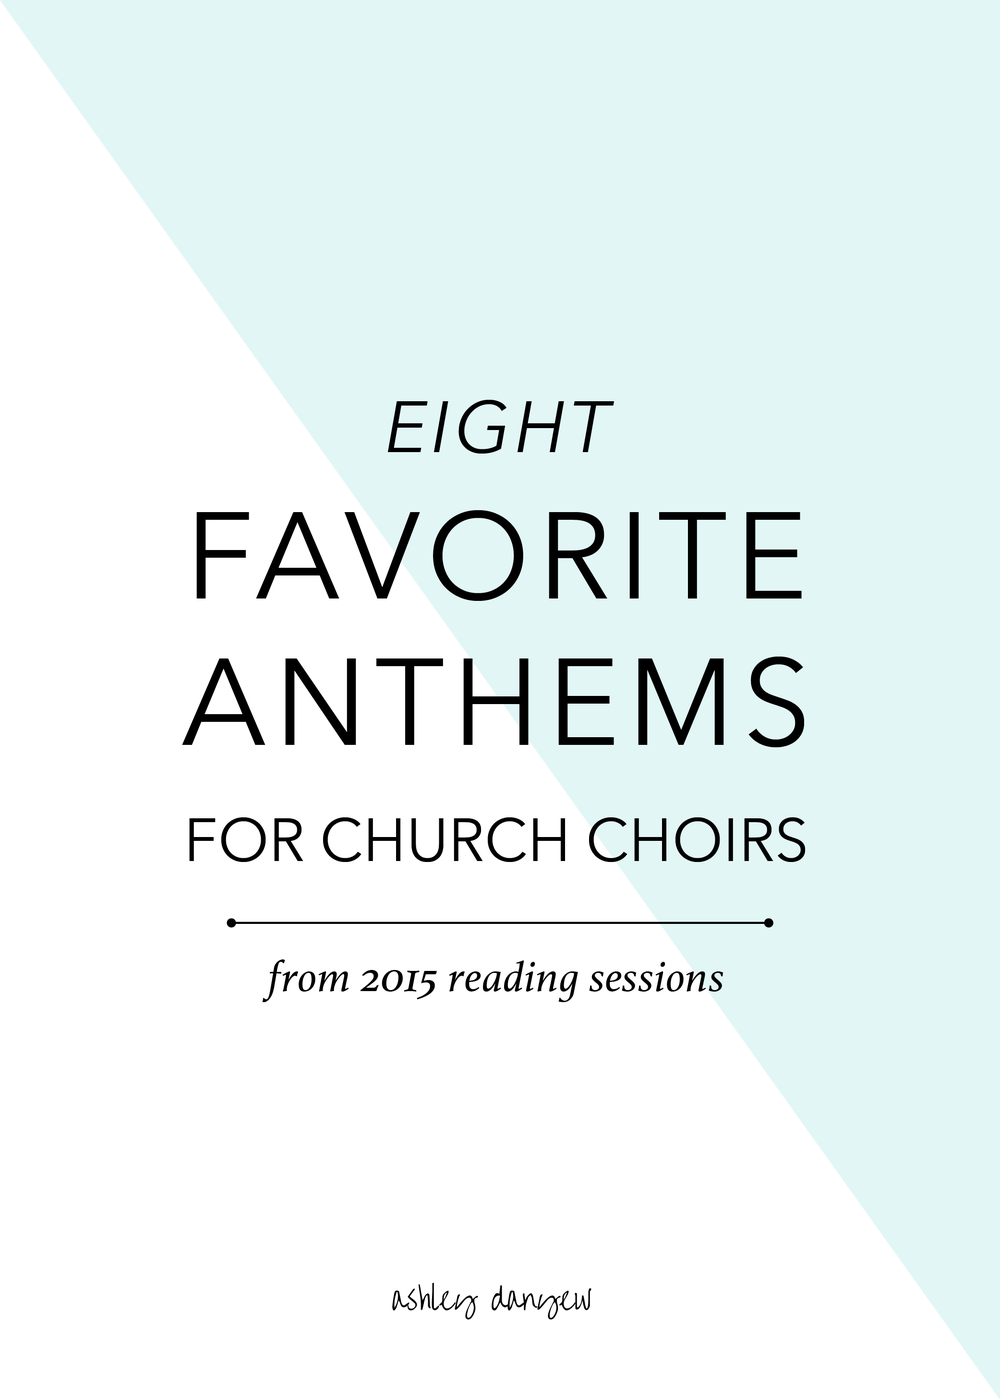 Eight-Favorite-Anthems-for-Church-Choirs-01.png